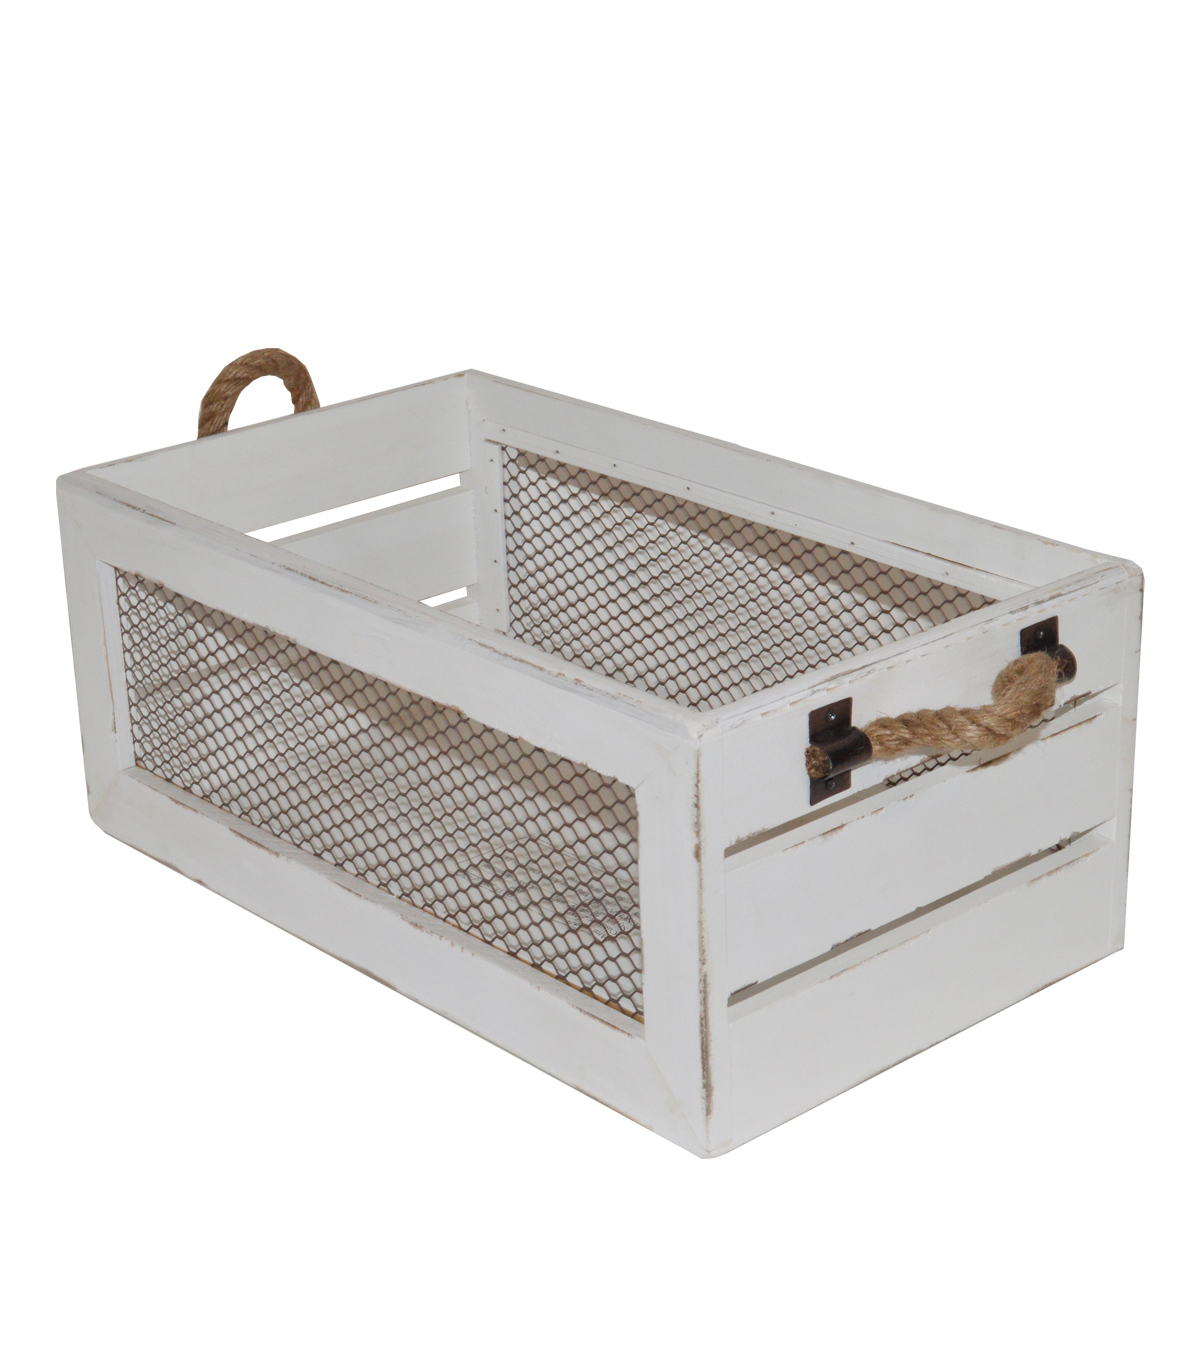 Farm Storage Small Crate with Chicken Wire-White